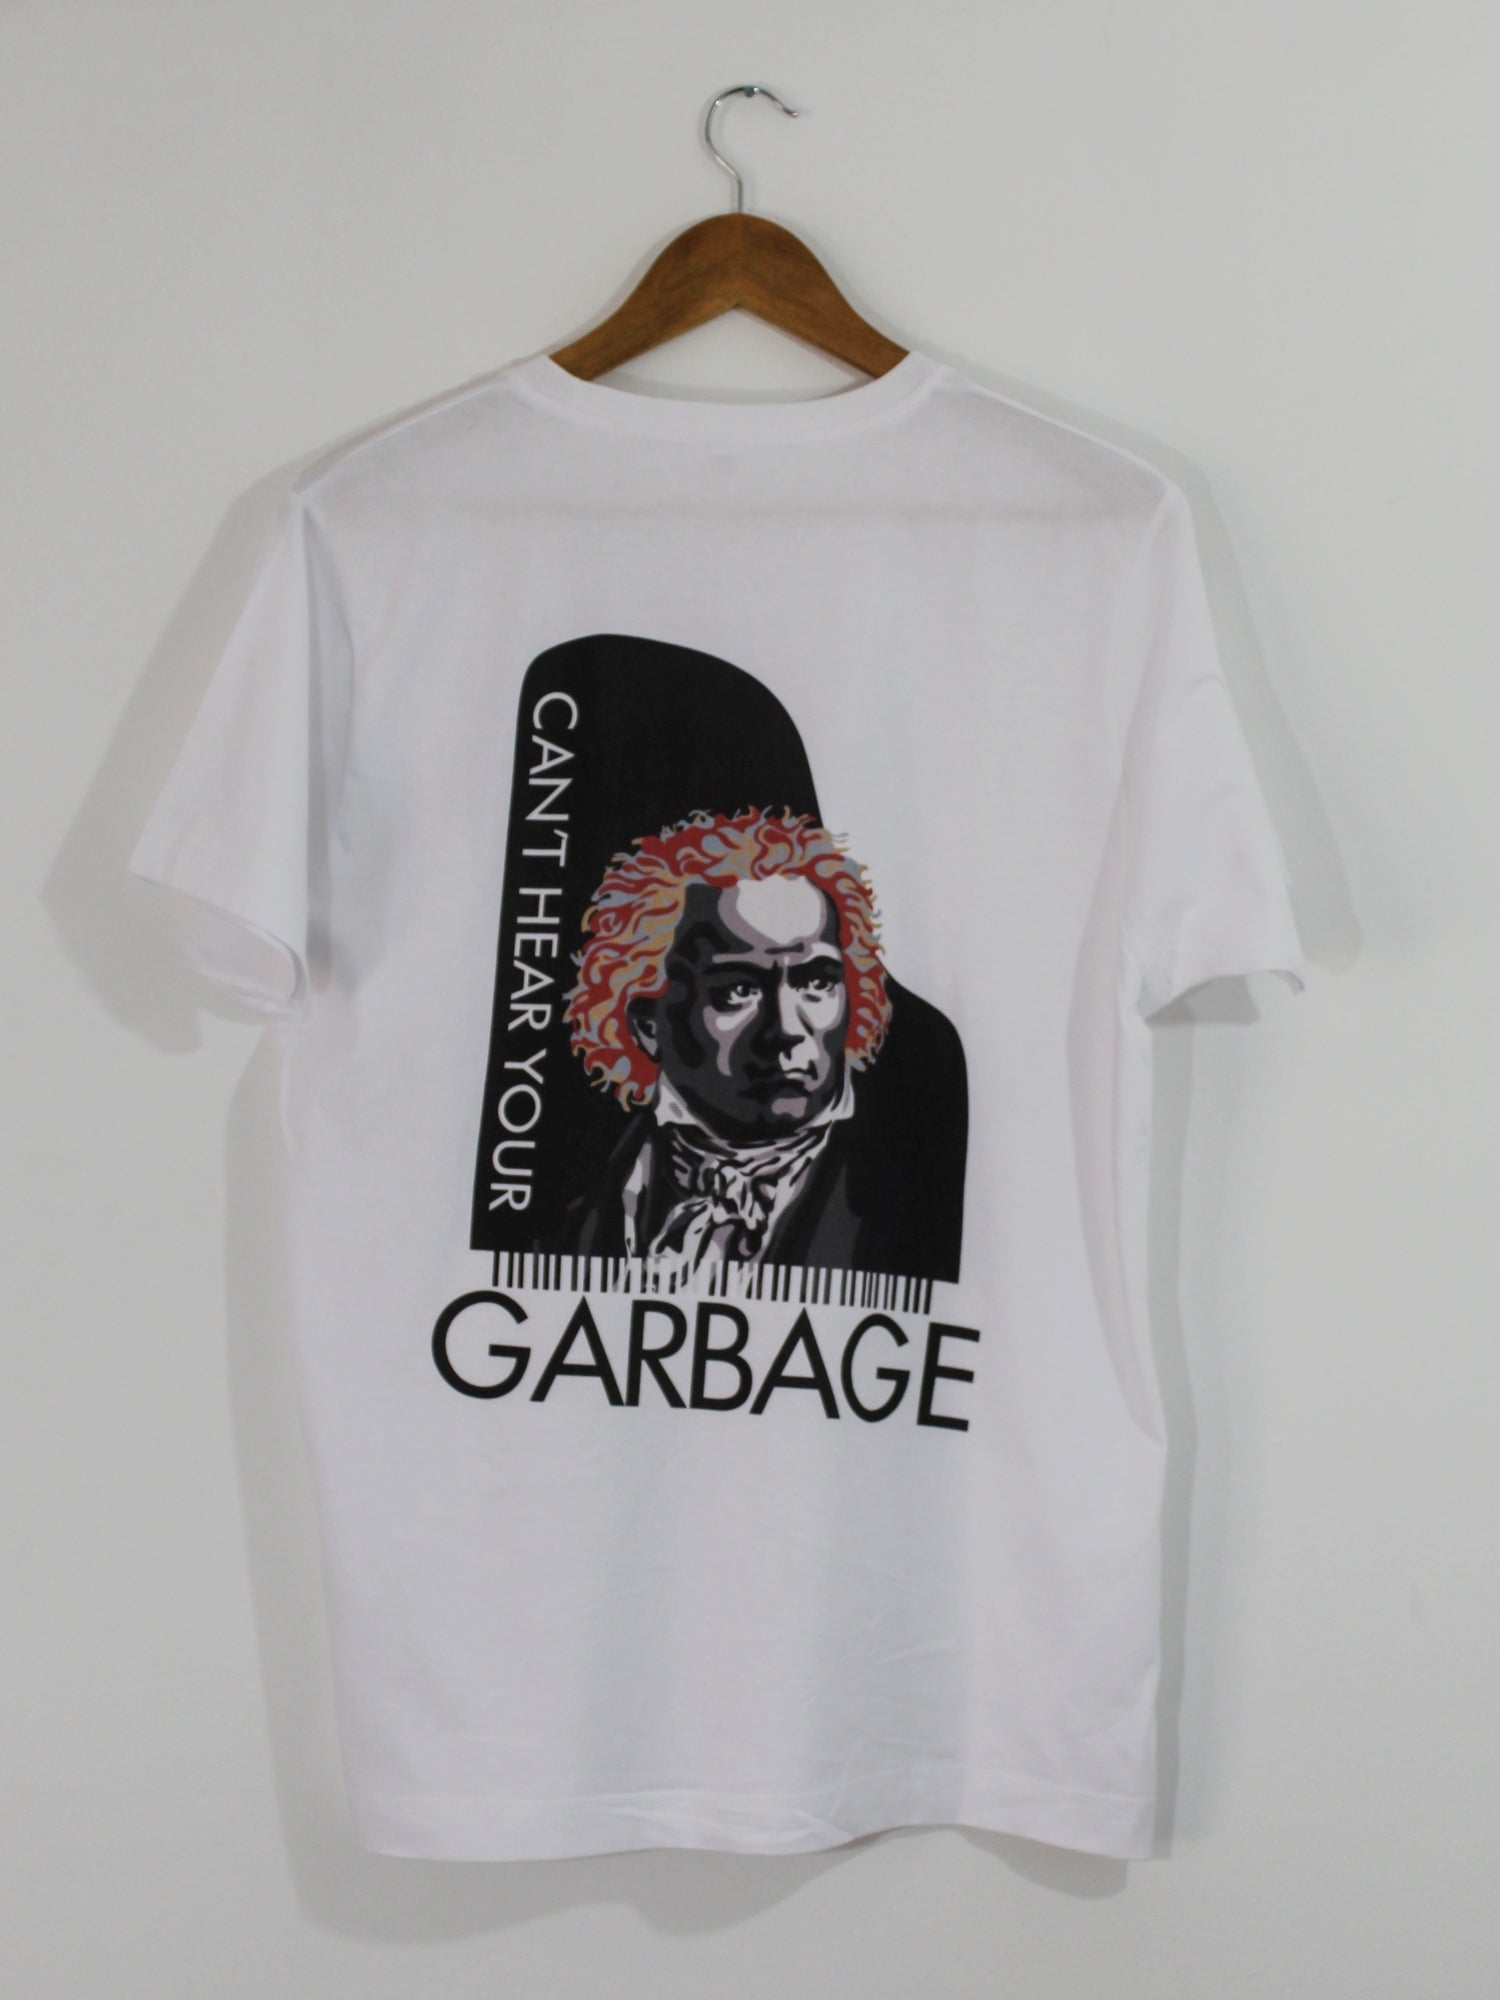 T-SHIRT BEETHOVEN | CAN'T HEAR YOUR GARBAGE